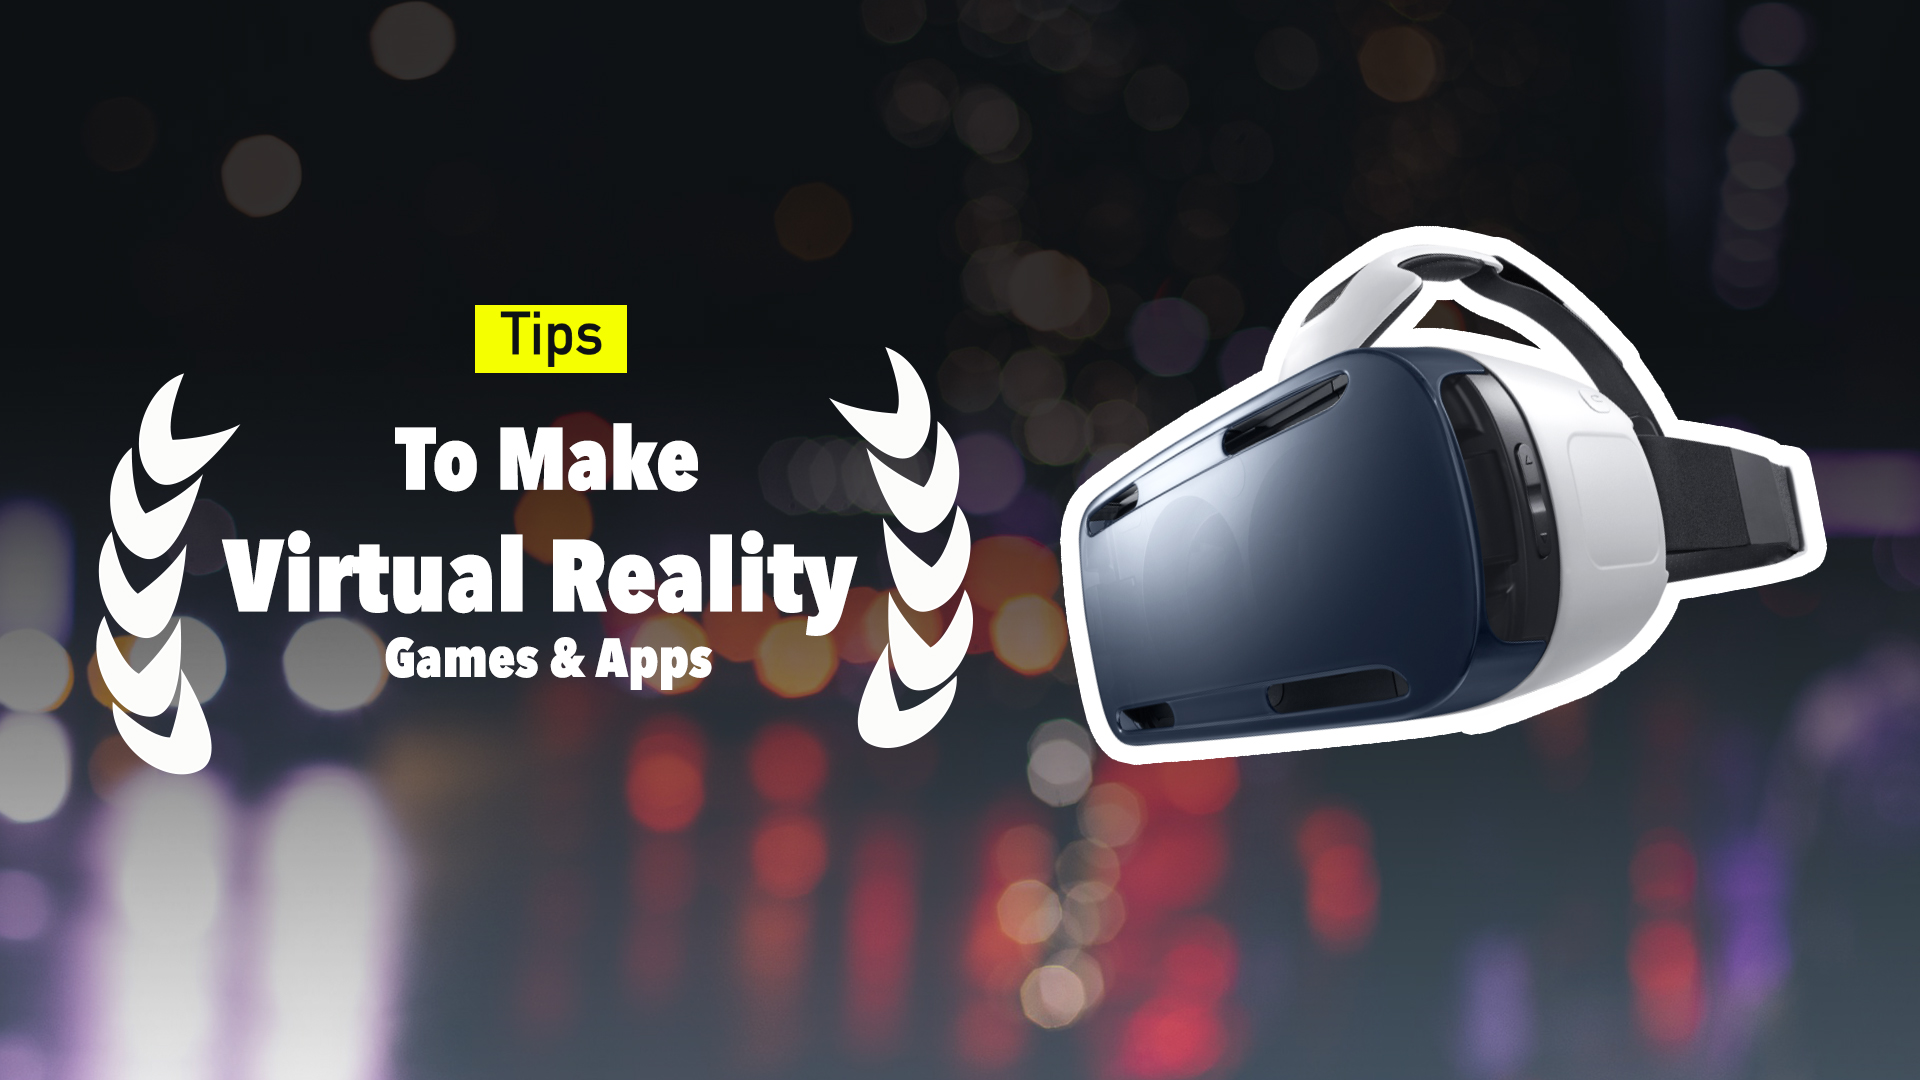 How to make apps with VR technology